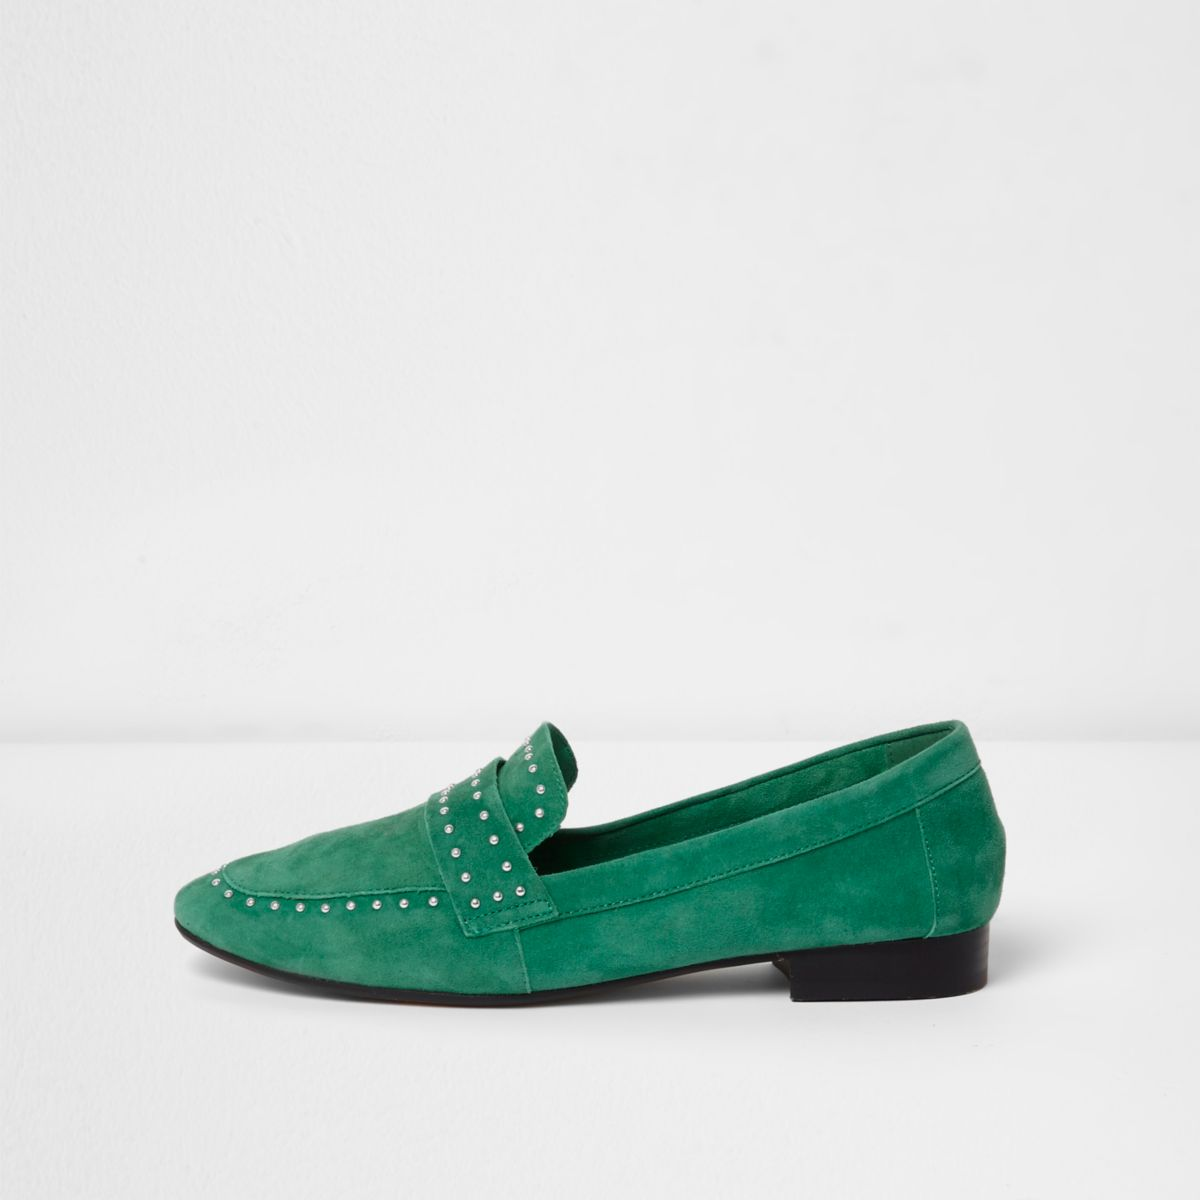 Green suede studded loafers